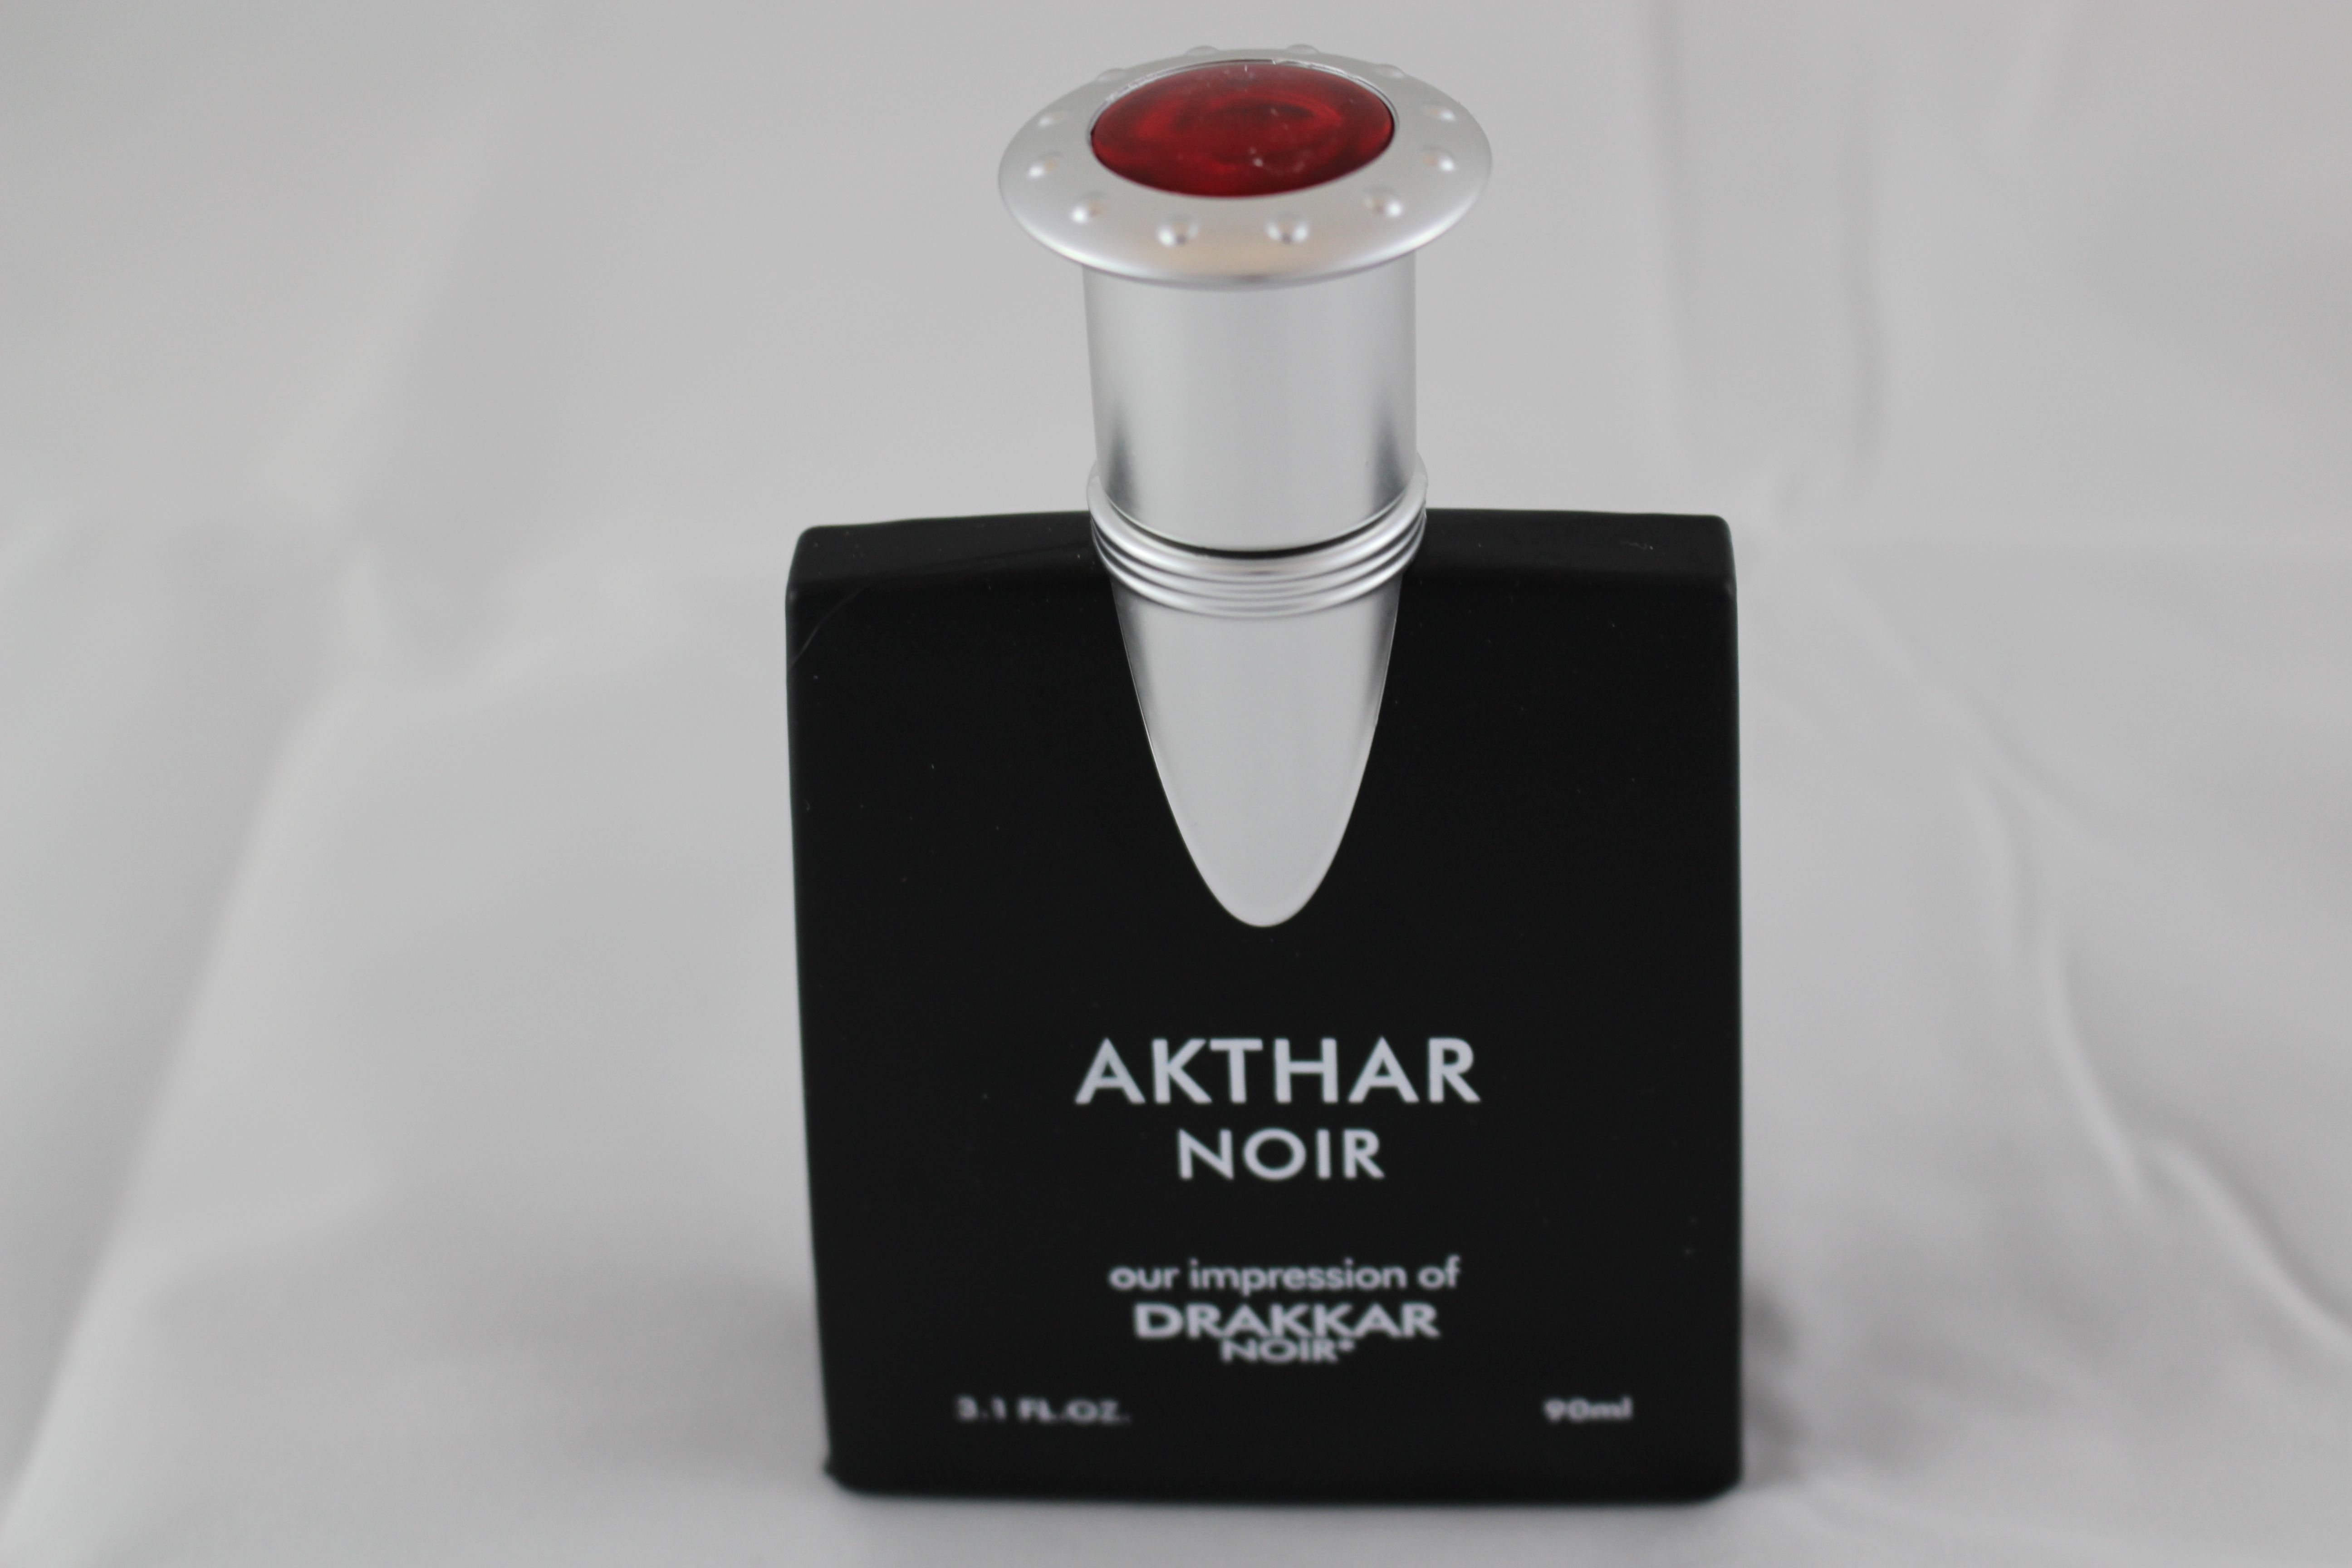 00c9ecf0f6 Akthar Noir is a classic fragrance with the following notes and bases:  Notes Basil Amber Patchouli Bases Cedarwood Leather Sandalwood